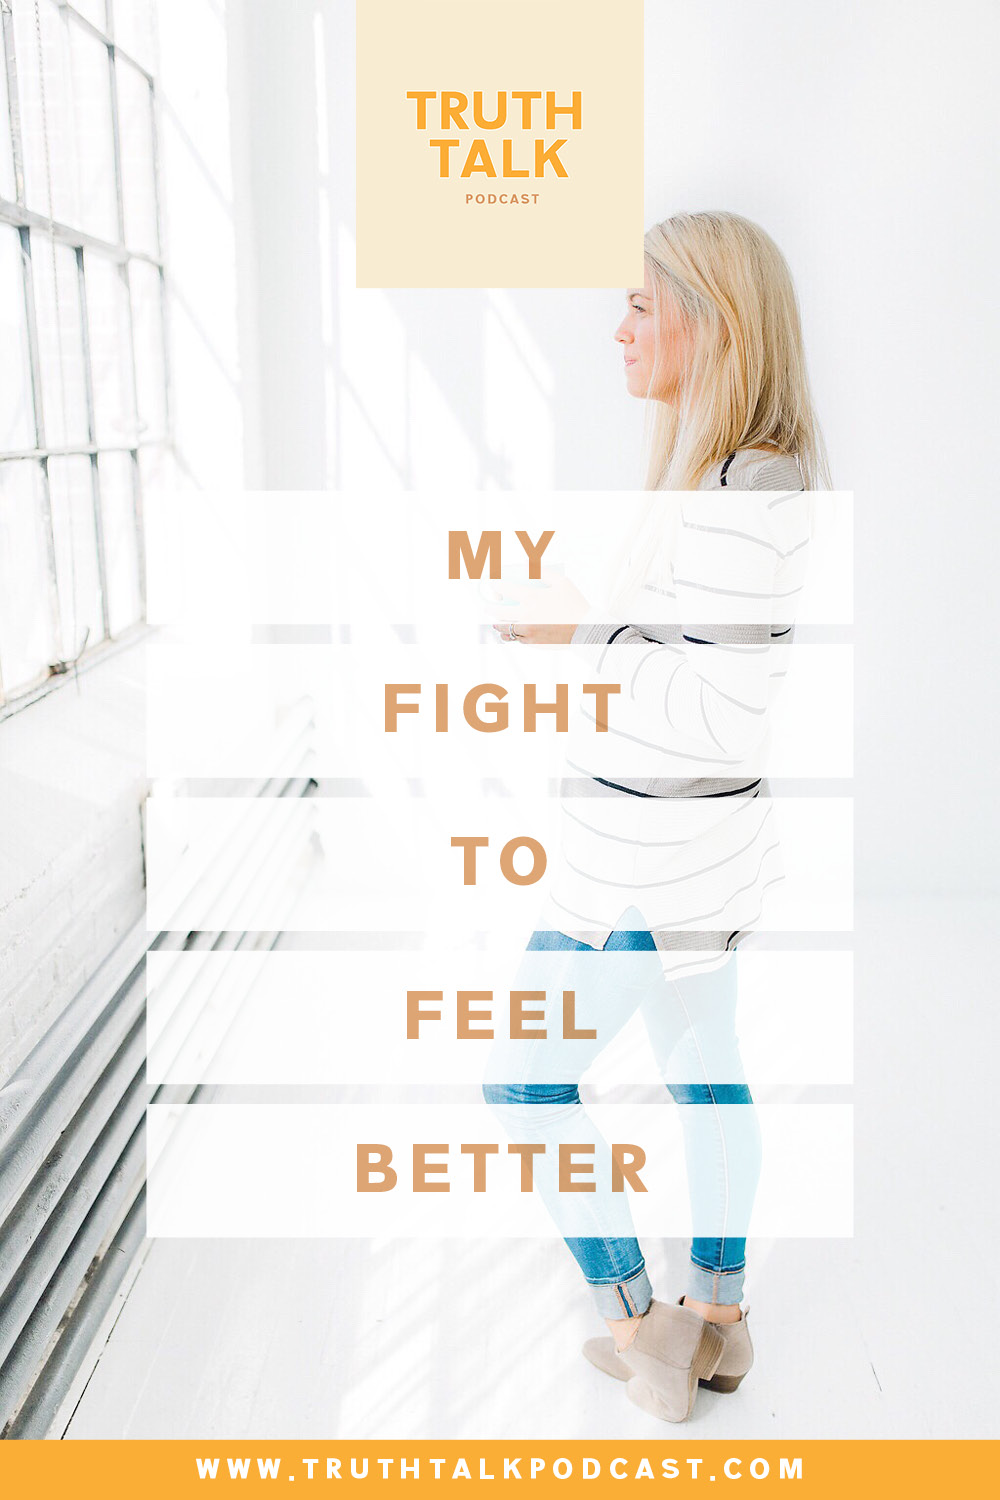 Today we're excited to bring you guys some truth talk about what it was like for one of your hosts, Emma, to go on a journey she calls, My Fight to Feel Better.  Failed diet after failed diet, she struggled for years with her own health but at the end of 2017 decided to stop making excuses and make the changes that needed to be made.  #myfighttofeelbetter